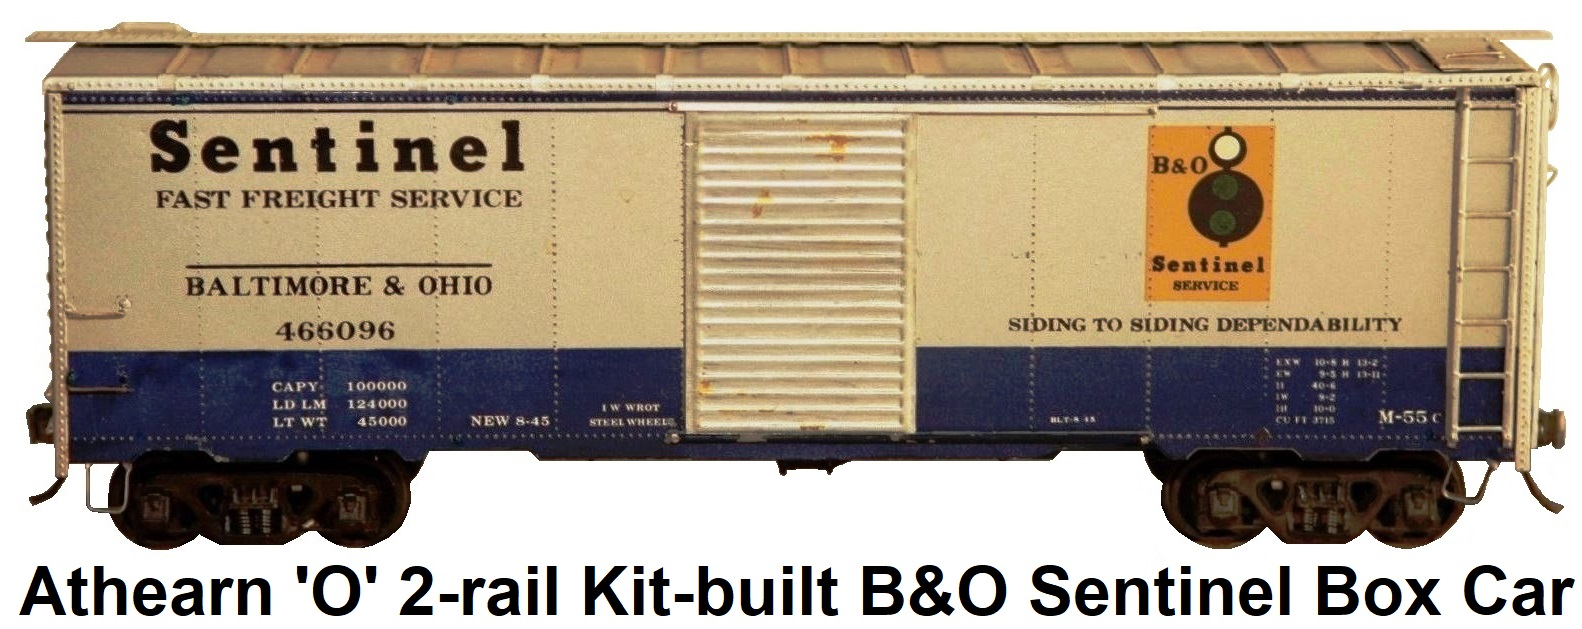 Athearn 'O' scale Kit-built 2-rail B&O Sentinel Single door 40' steel box car